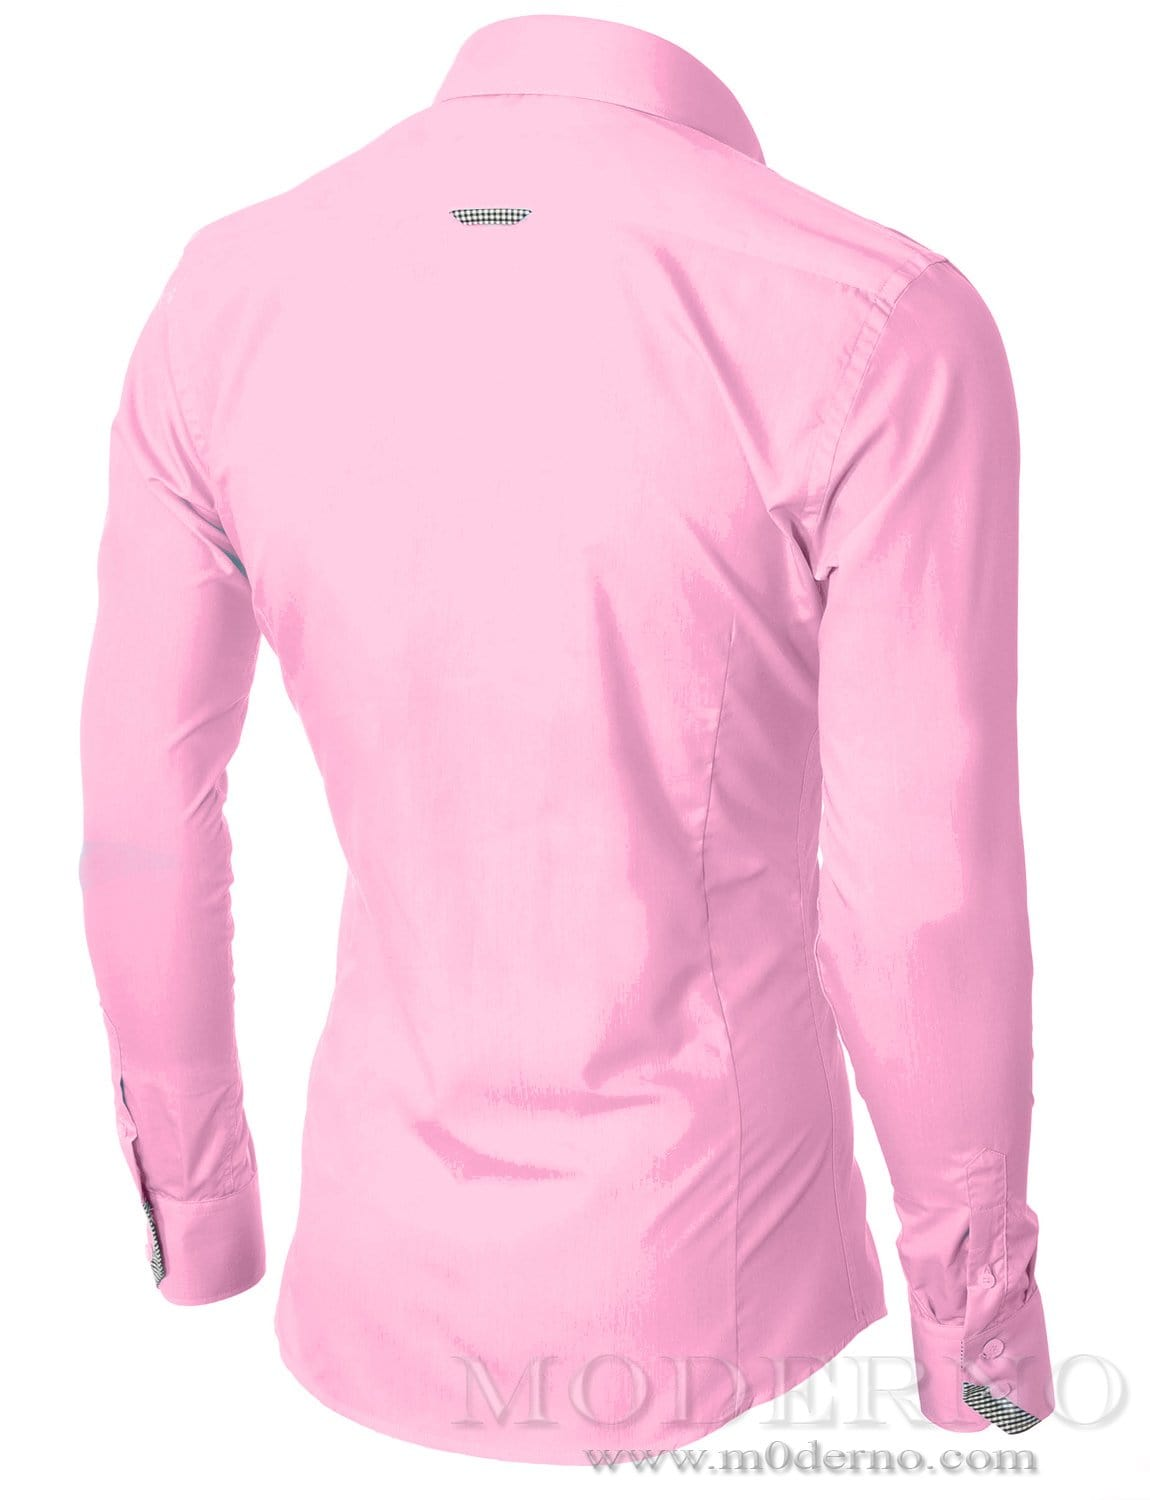 Mens button down pink shirt with one pocket by moderno for Mens pink long sleeve shirt